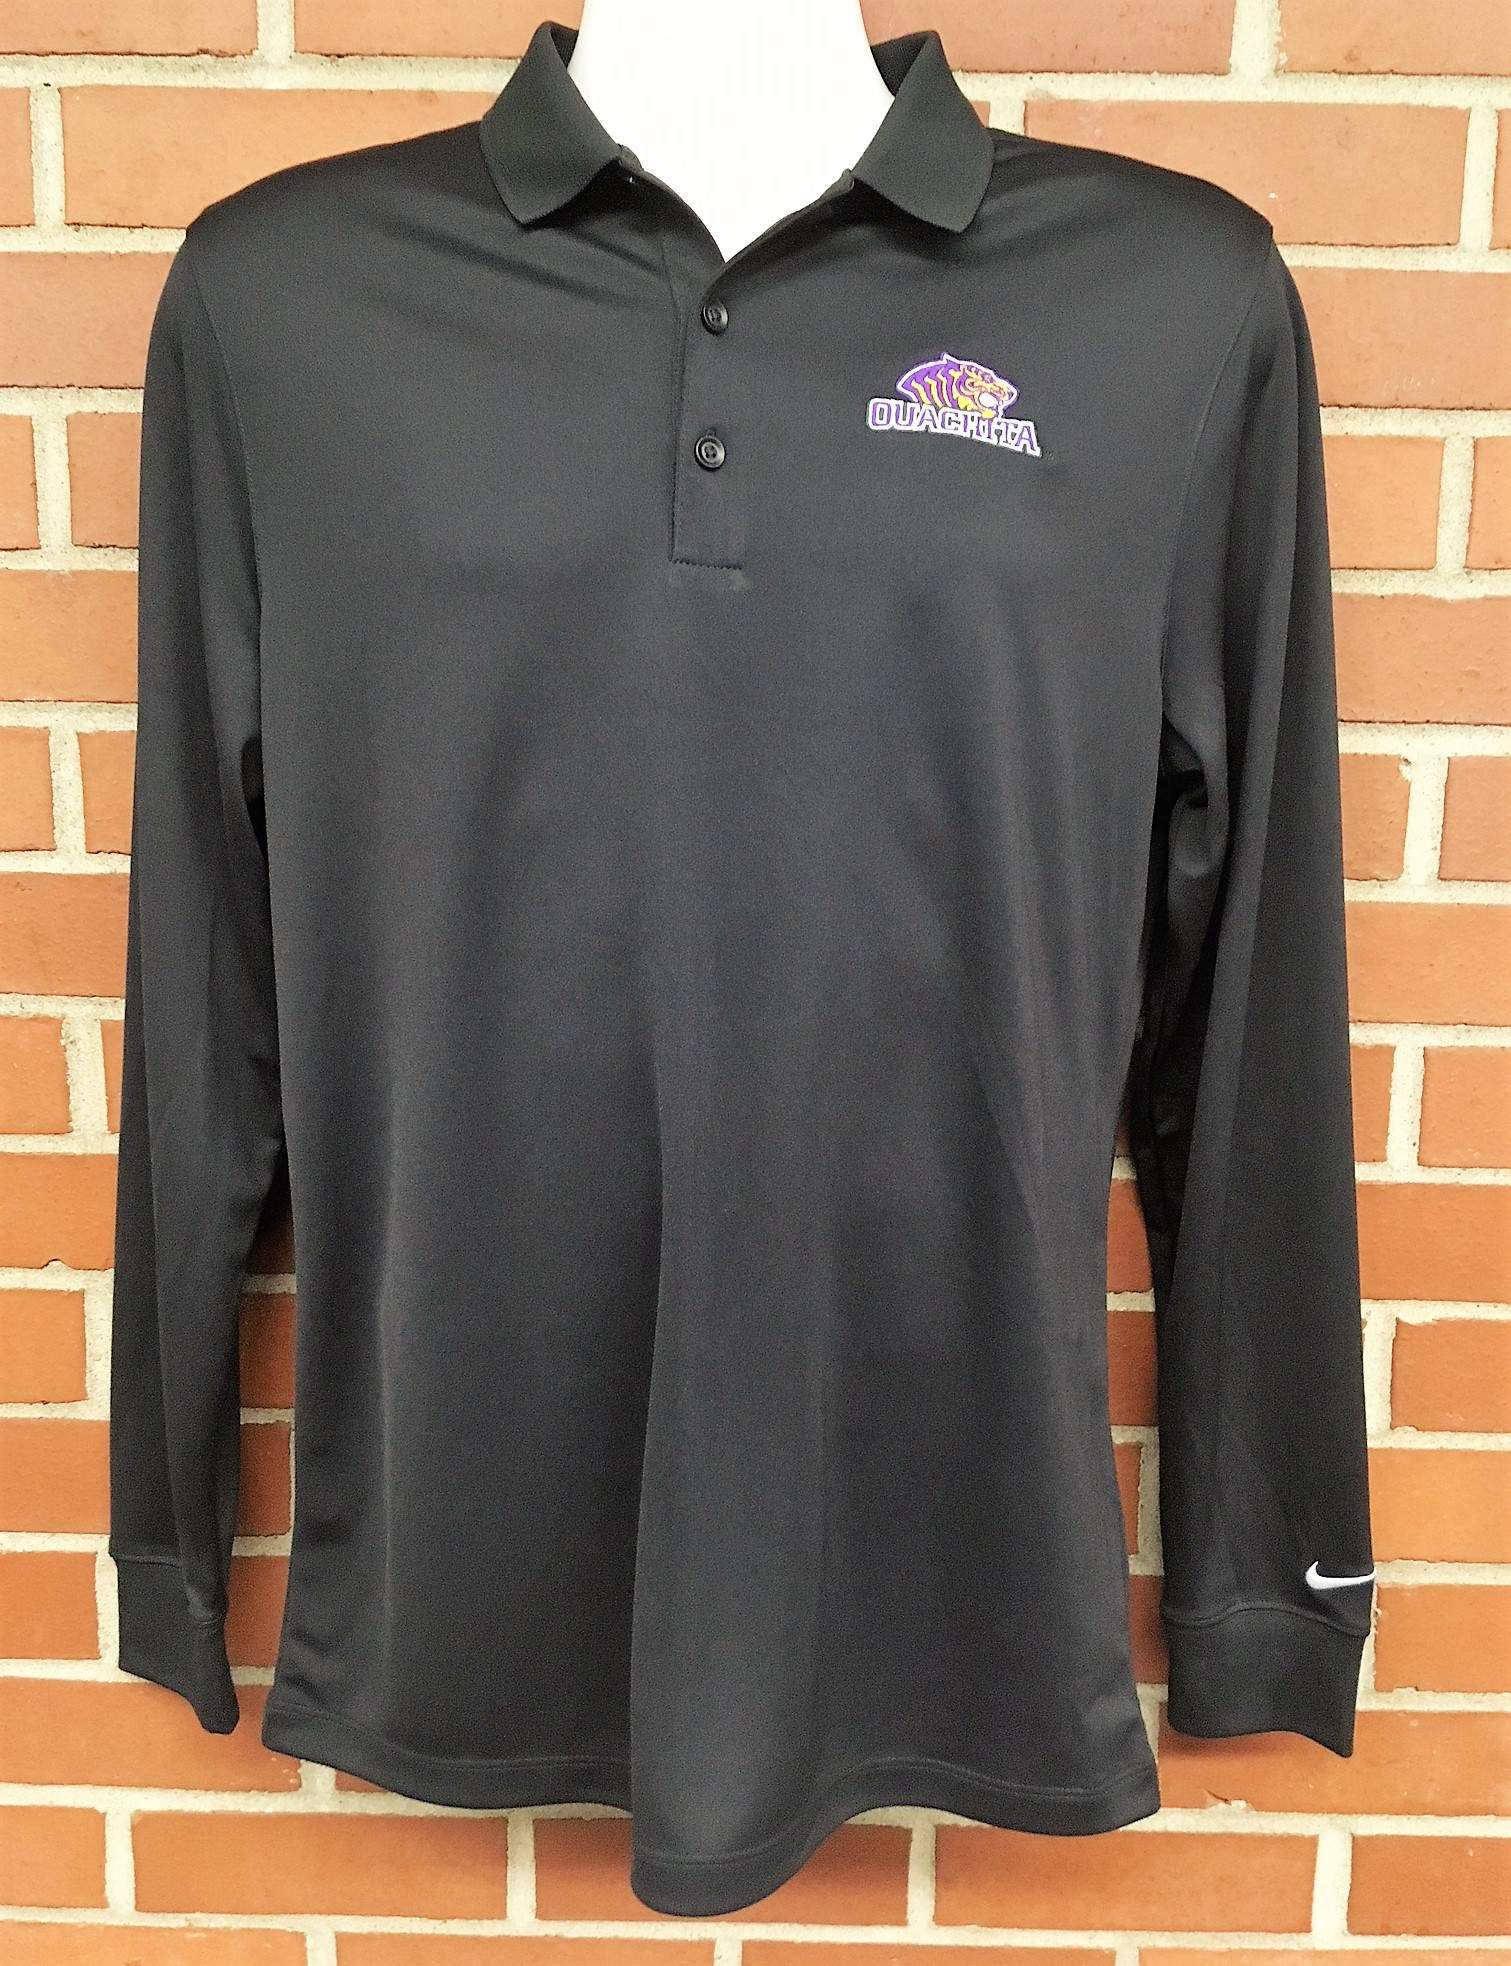 image of: OUACHITA LONG SLEEVE VICTORY POLO